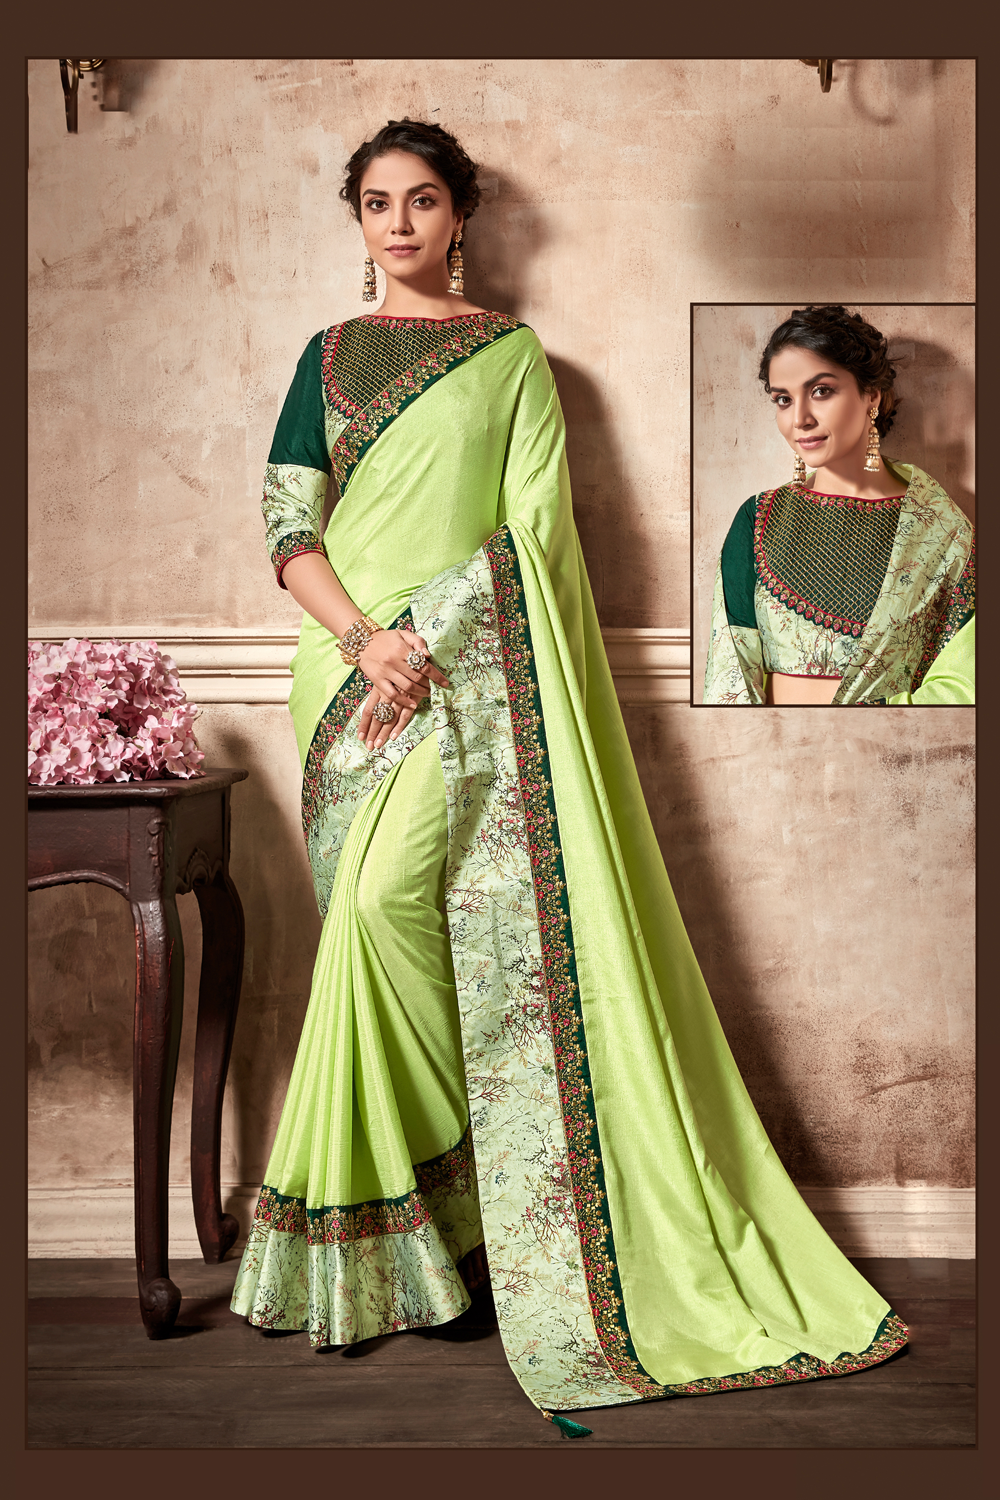 Hues of greens ornamented with delicate floral embroideries saree